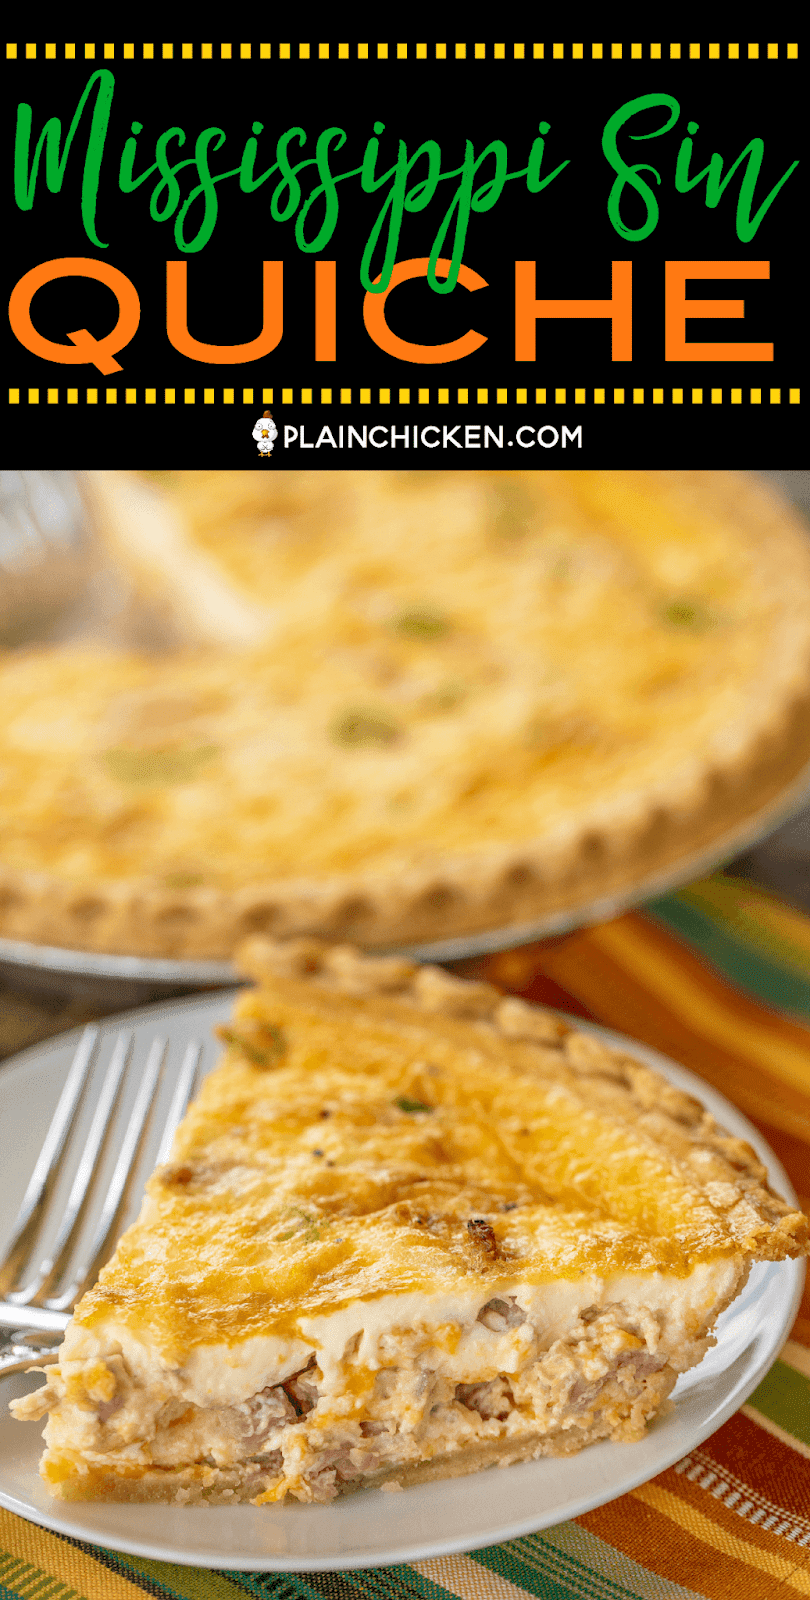 Mississippi Sin Quiche - all the flavors of our favorite dip in a quiche! Can make ahead and refrigerate or freeze for later. Ham, cream cheese, cheddar cheese, worcestershire sauce, green onion, hot sauce, sour cream, eggs, milk, pie crust. Everyone LOVED this delicious quiche!! I always double the recipe because this doesn't last long. SO good! #quiche #mississippisin #ham #breakfast #freezermeal